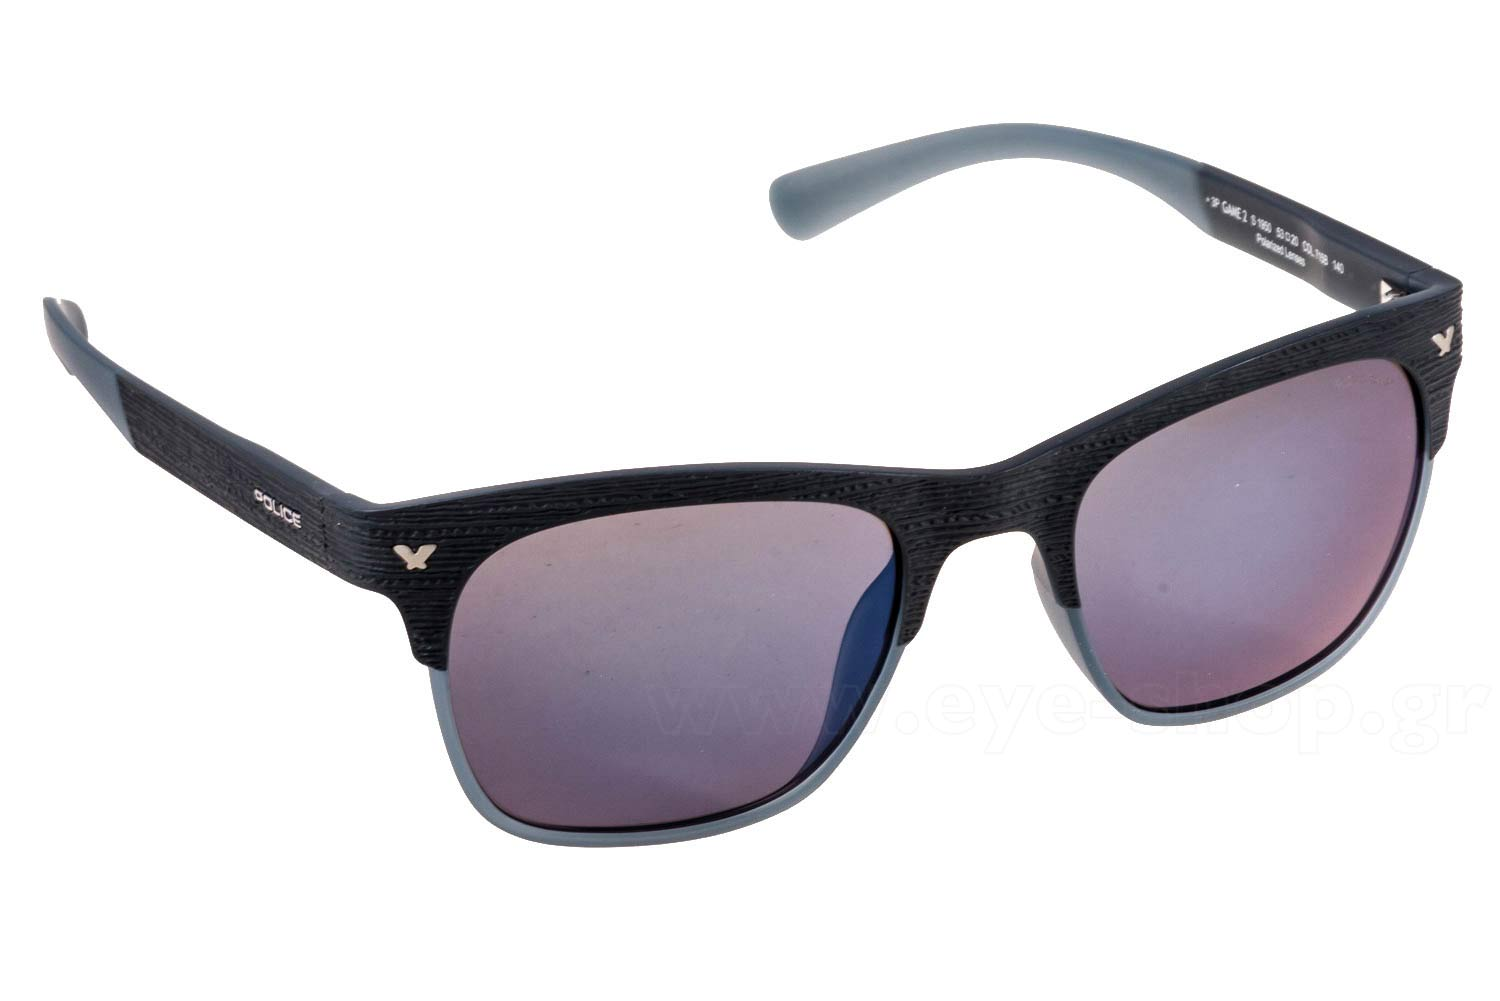 6210b506c7 Γυαλια Ηλιου Police S1950-GAME-2 715B Polarized size 53 Τιμή  86